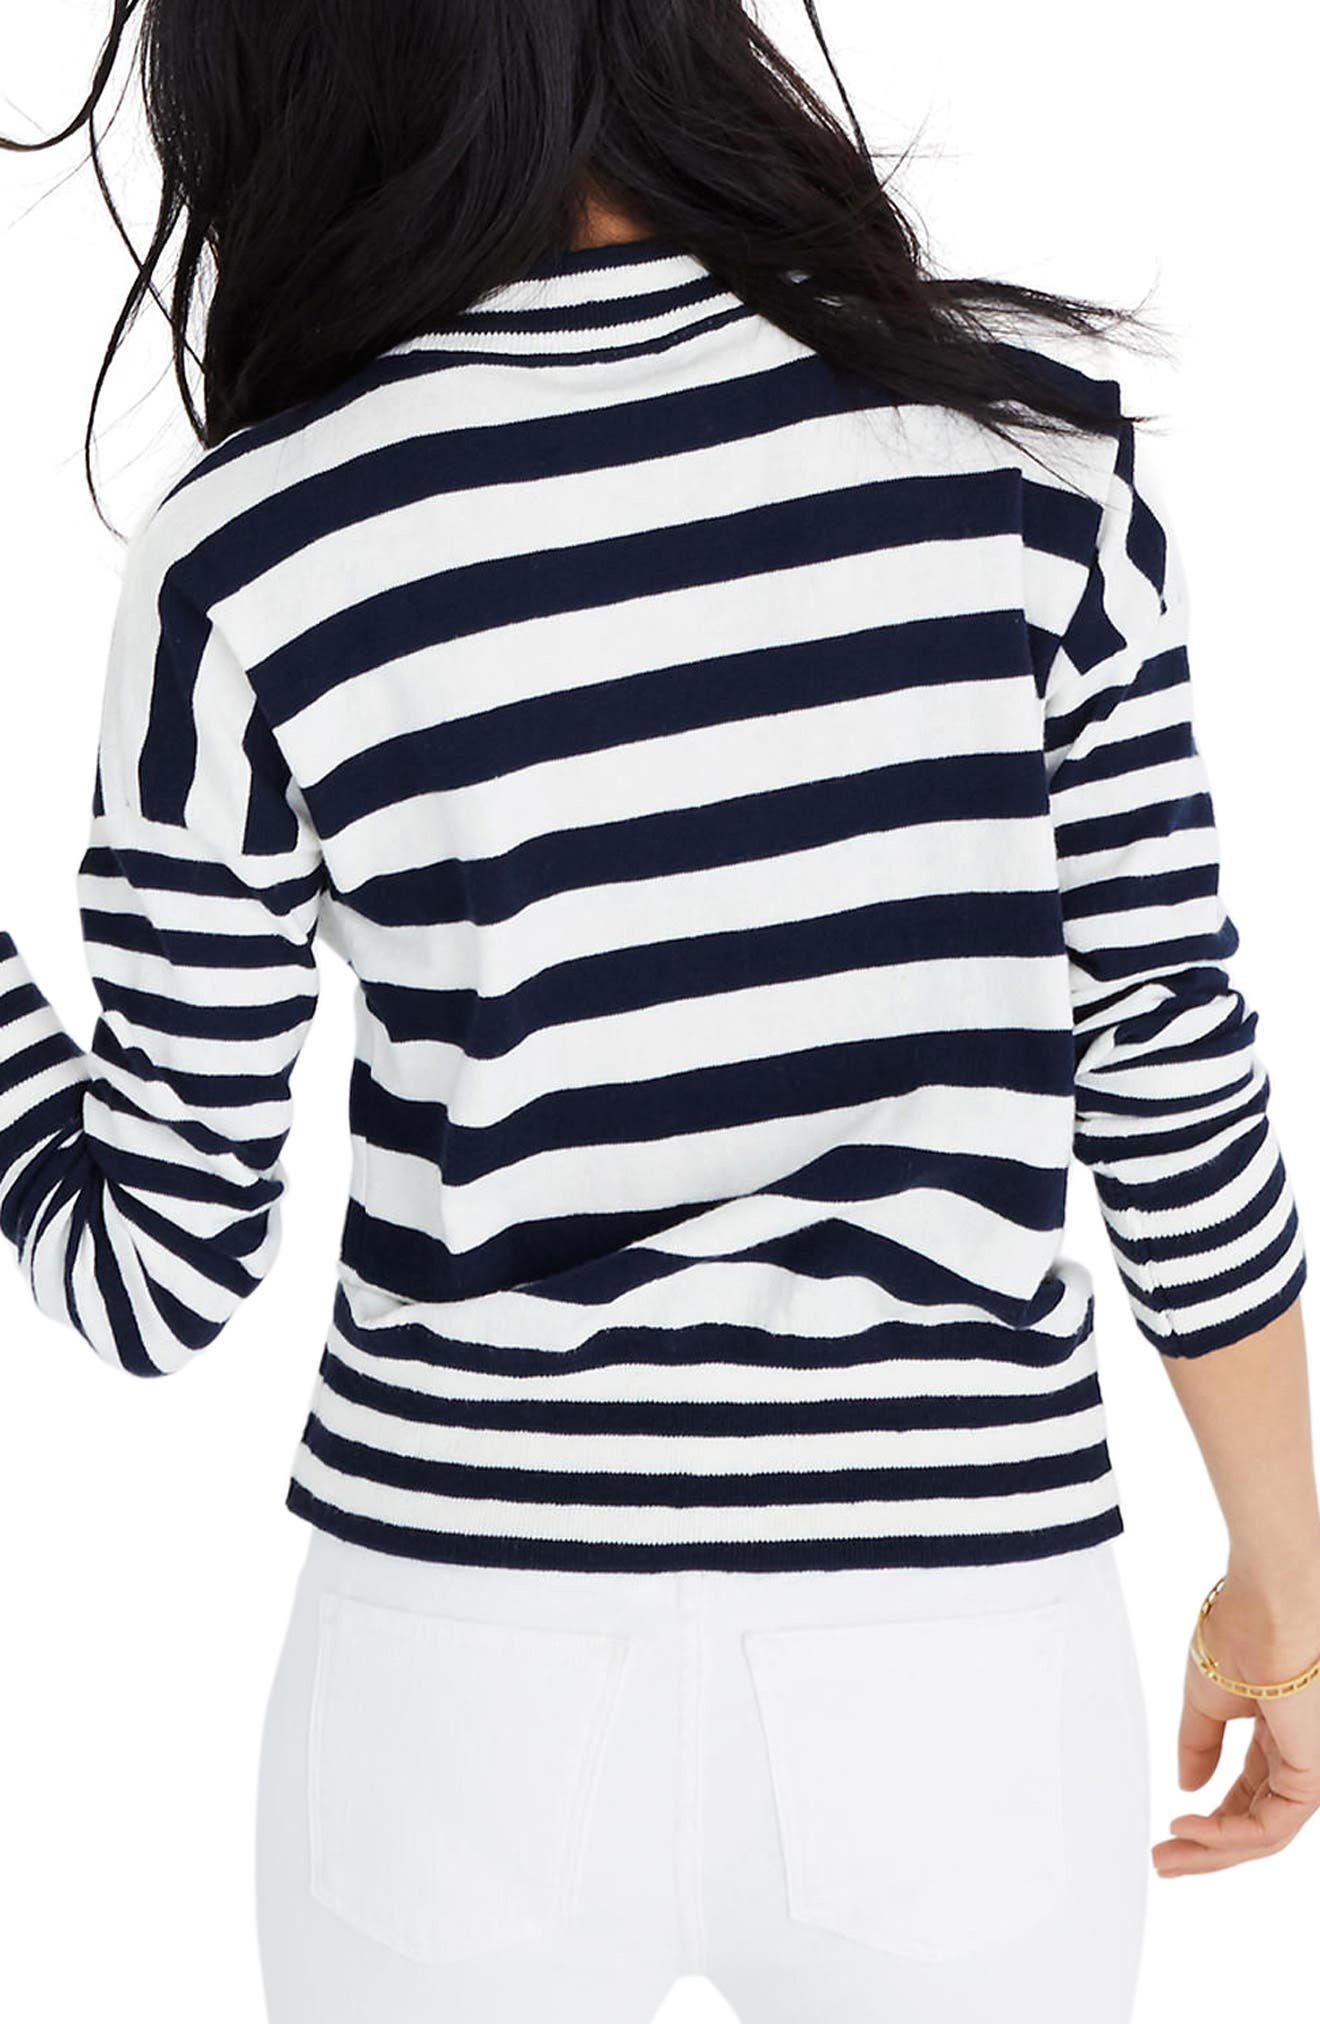 MADEWELL,                             Stripe Mock Neck Sweater,                             Alternate thumbnail 2, color,                             400